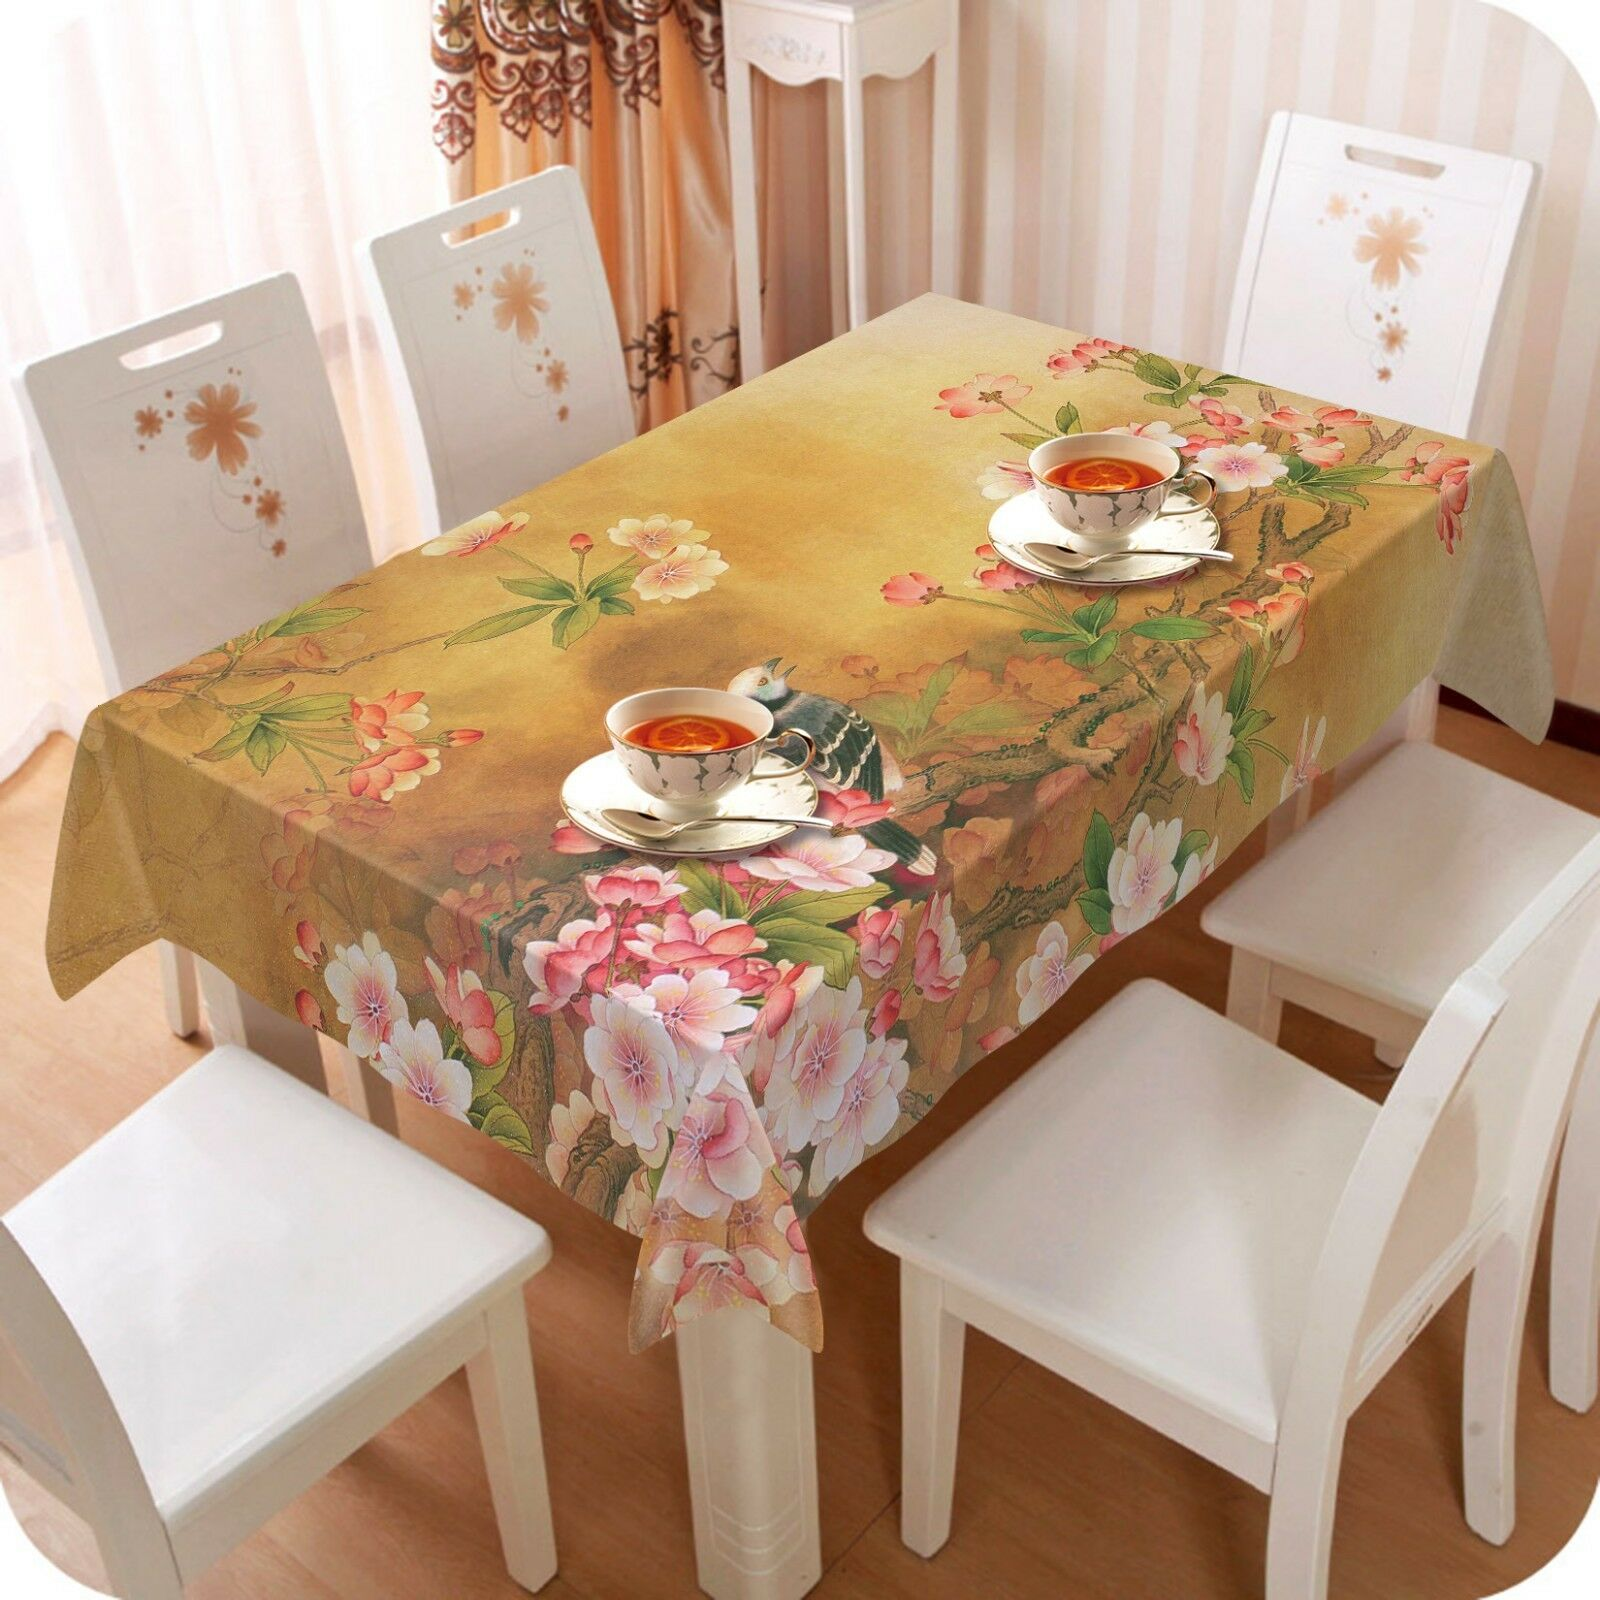 3D Flower Bird 16 Tablecloth Table Cover Cloth Birthday Party Event AJ WALLPAPER